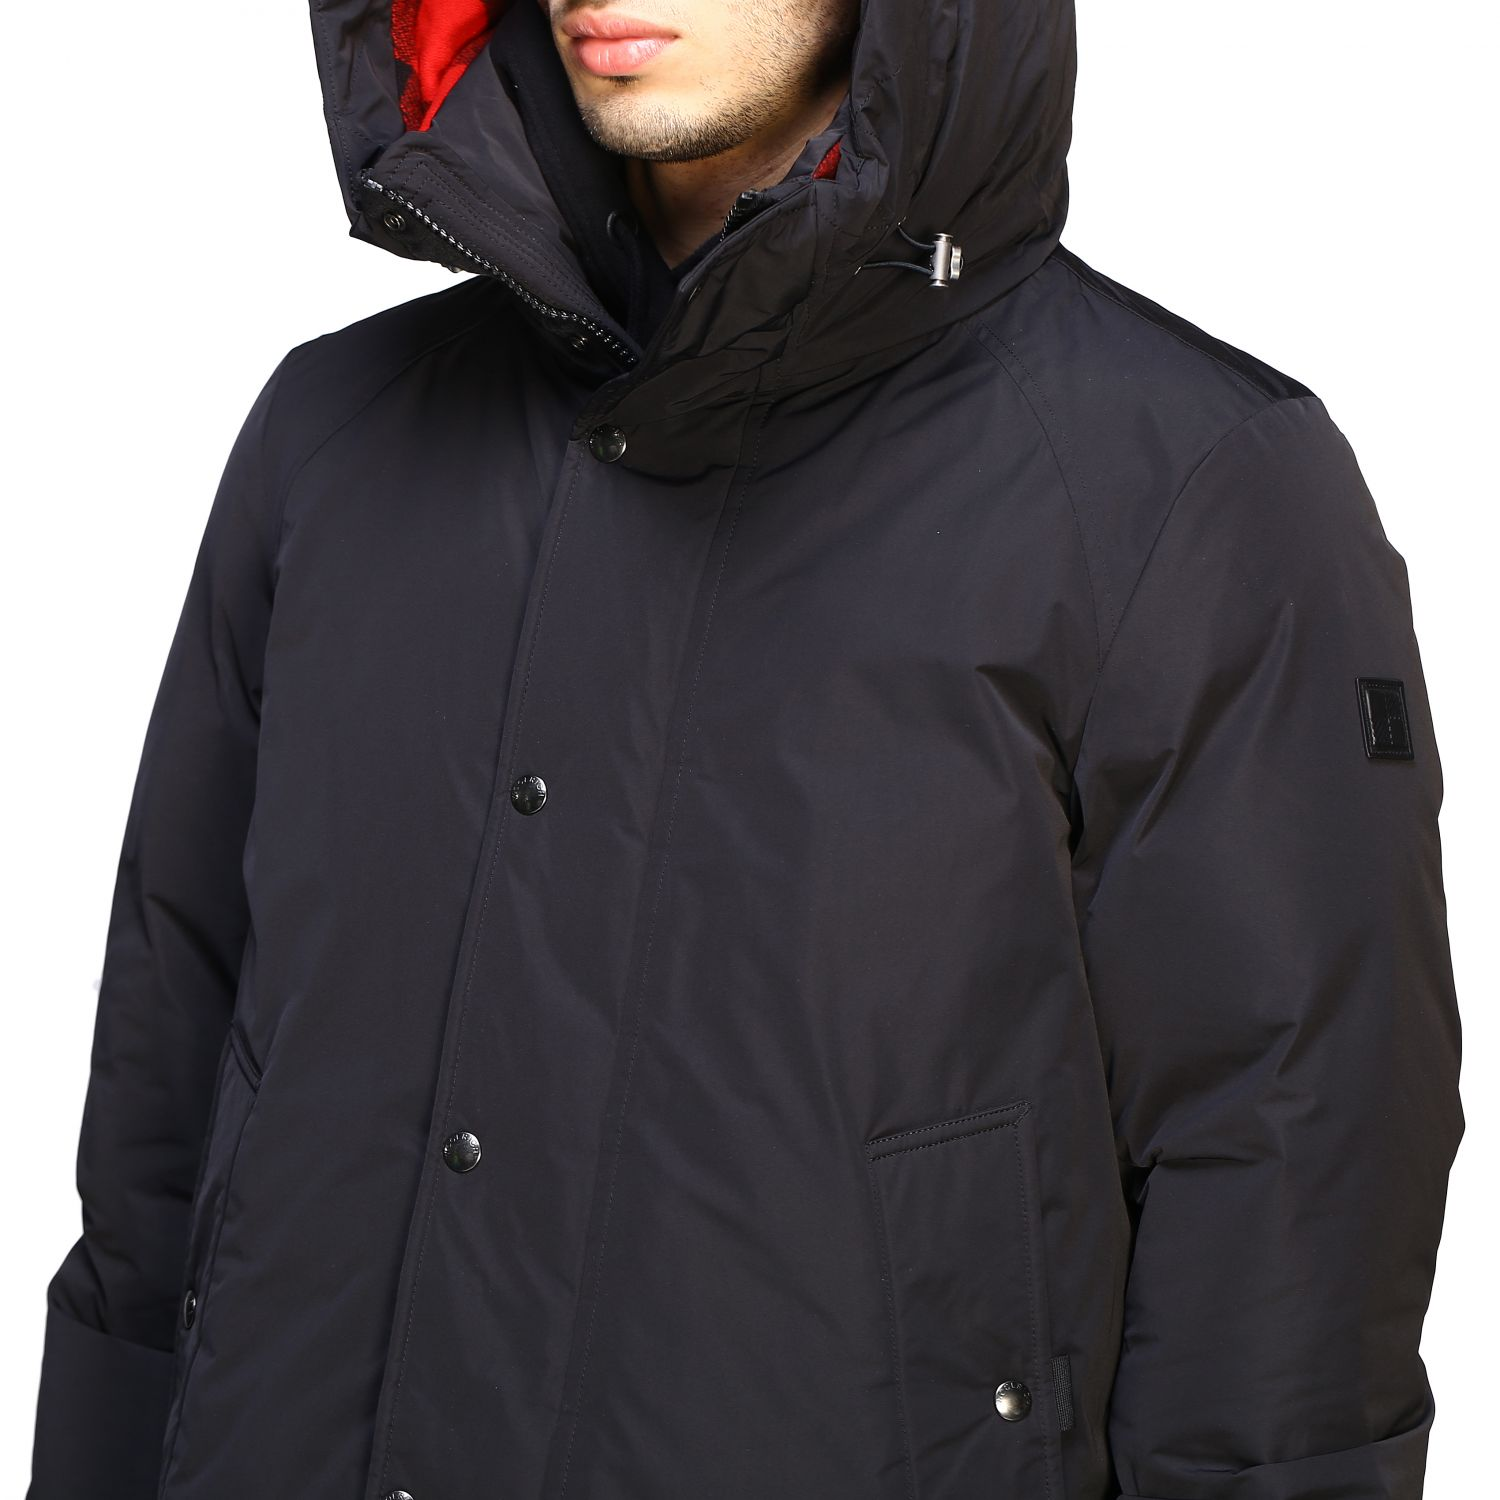 Boundry jacket nylon medio con cappuccio check nero 5